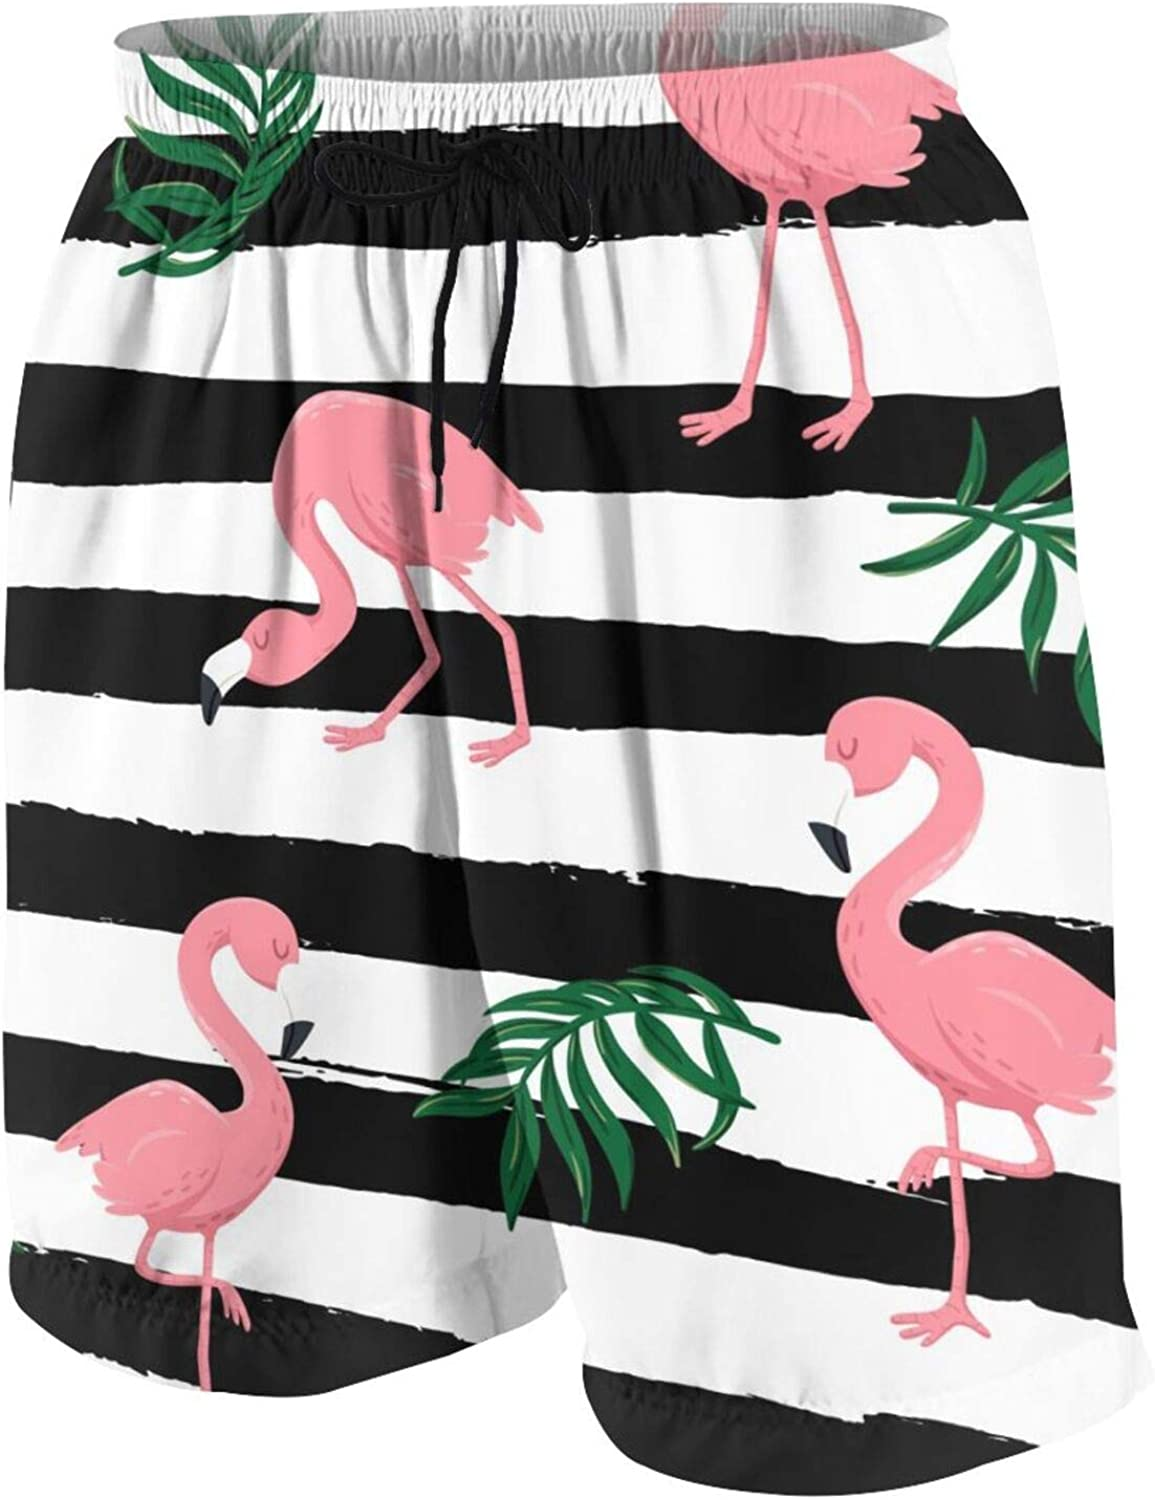 Pink Flamingo Birds and Tropical Leaves Boys Swim Trunks Quick Dry Beach Board Swim Shorts Swimsuit Swimwear from 7T to 18